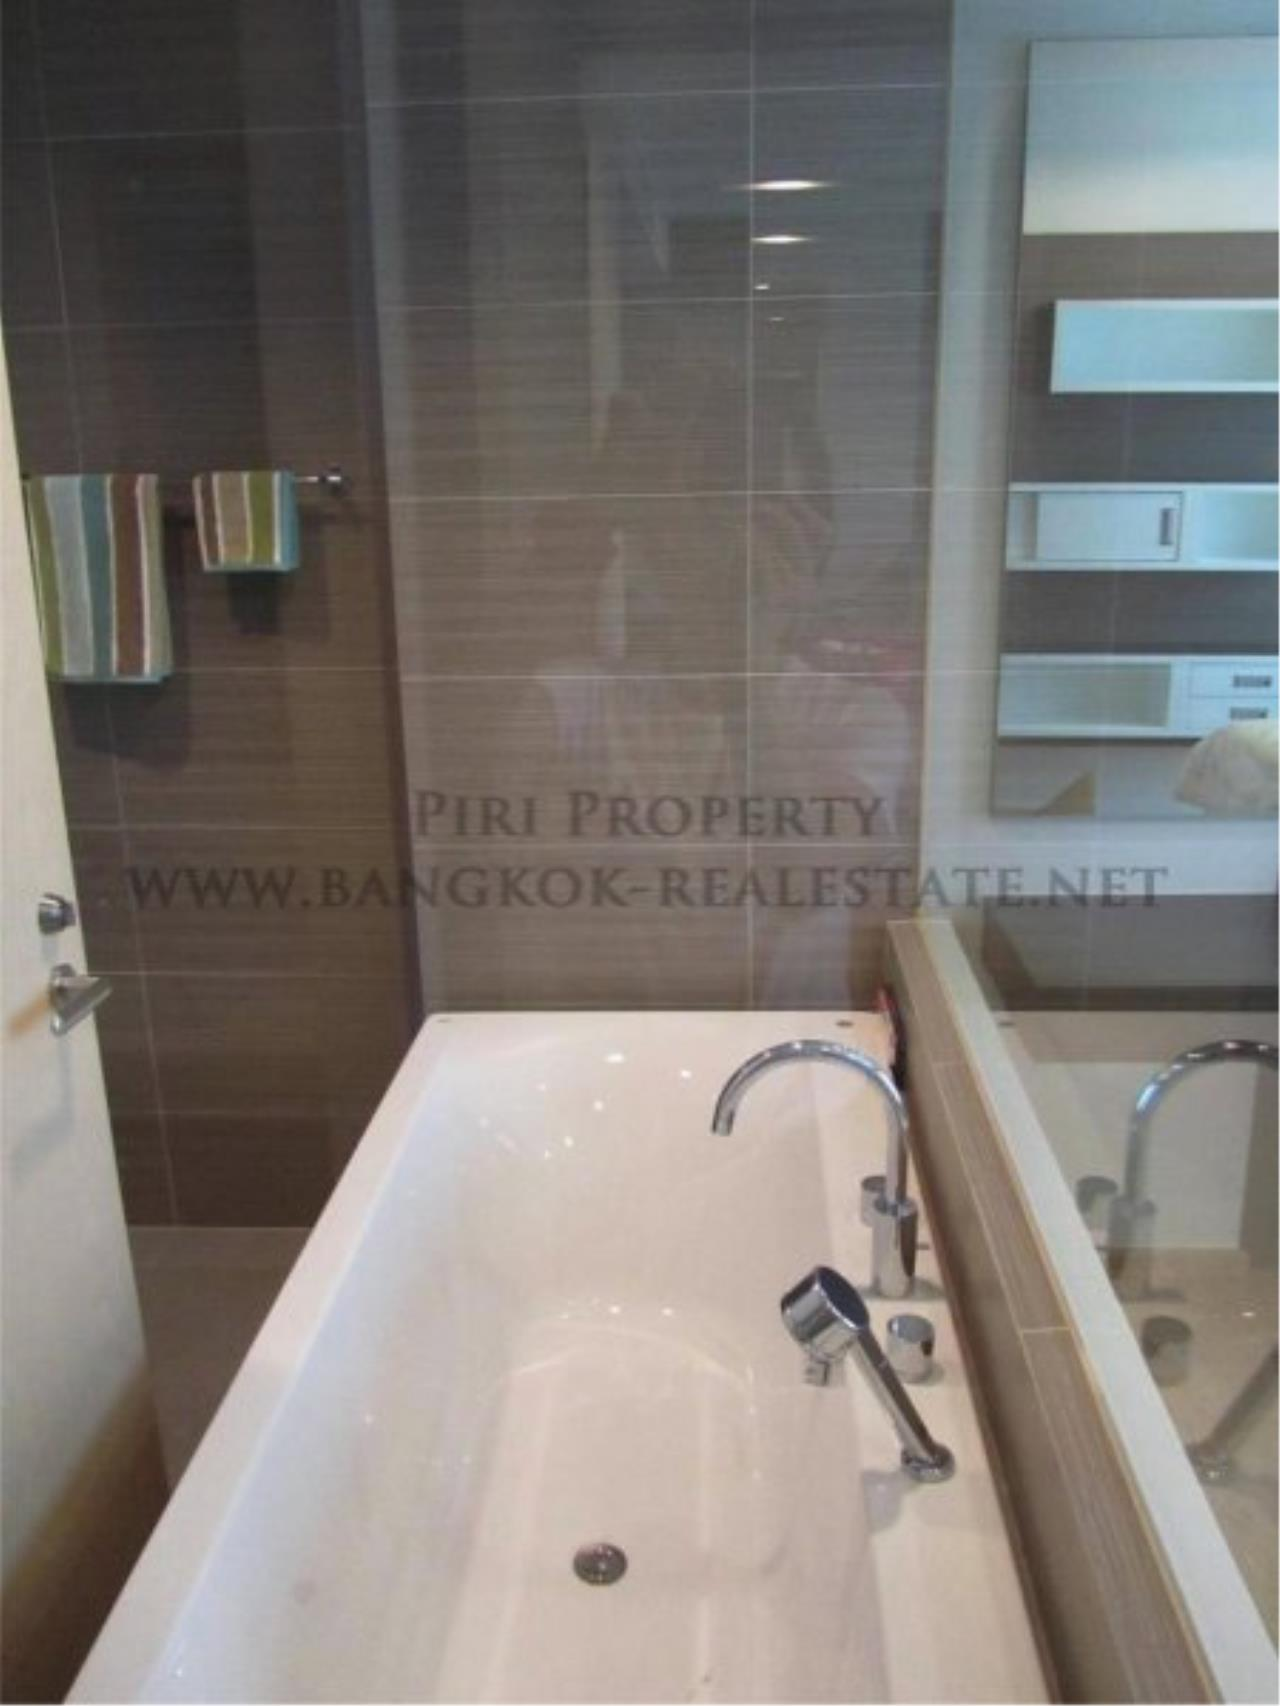 Piri Property Agency's 2 Bedroom Condo just a minute walk away from the Thonglor BTS - Siri at Sukhumvit 12